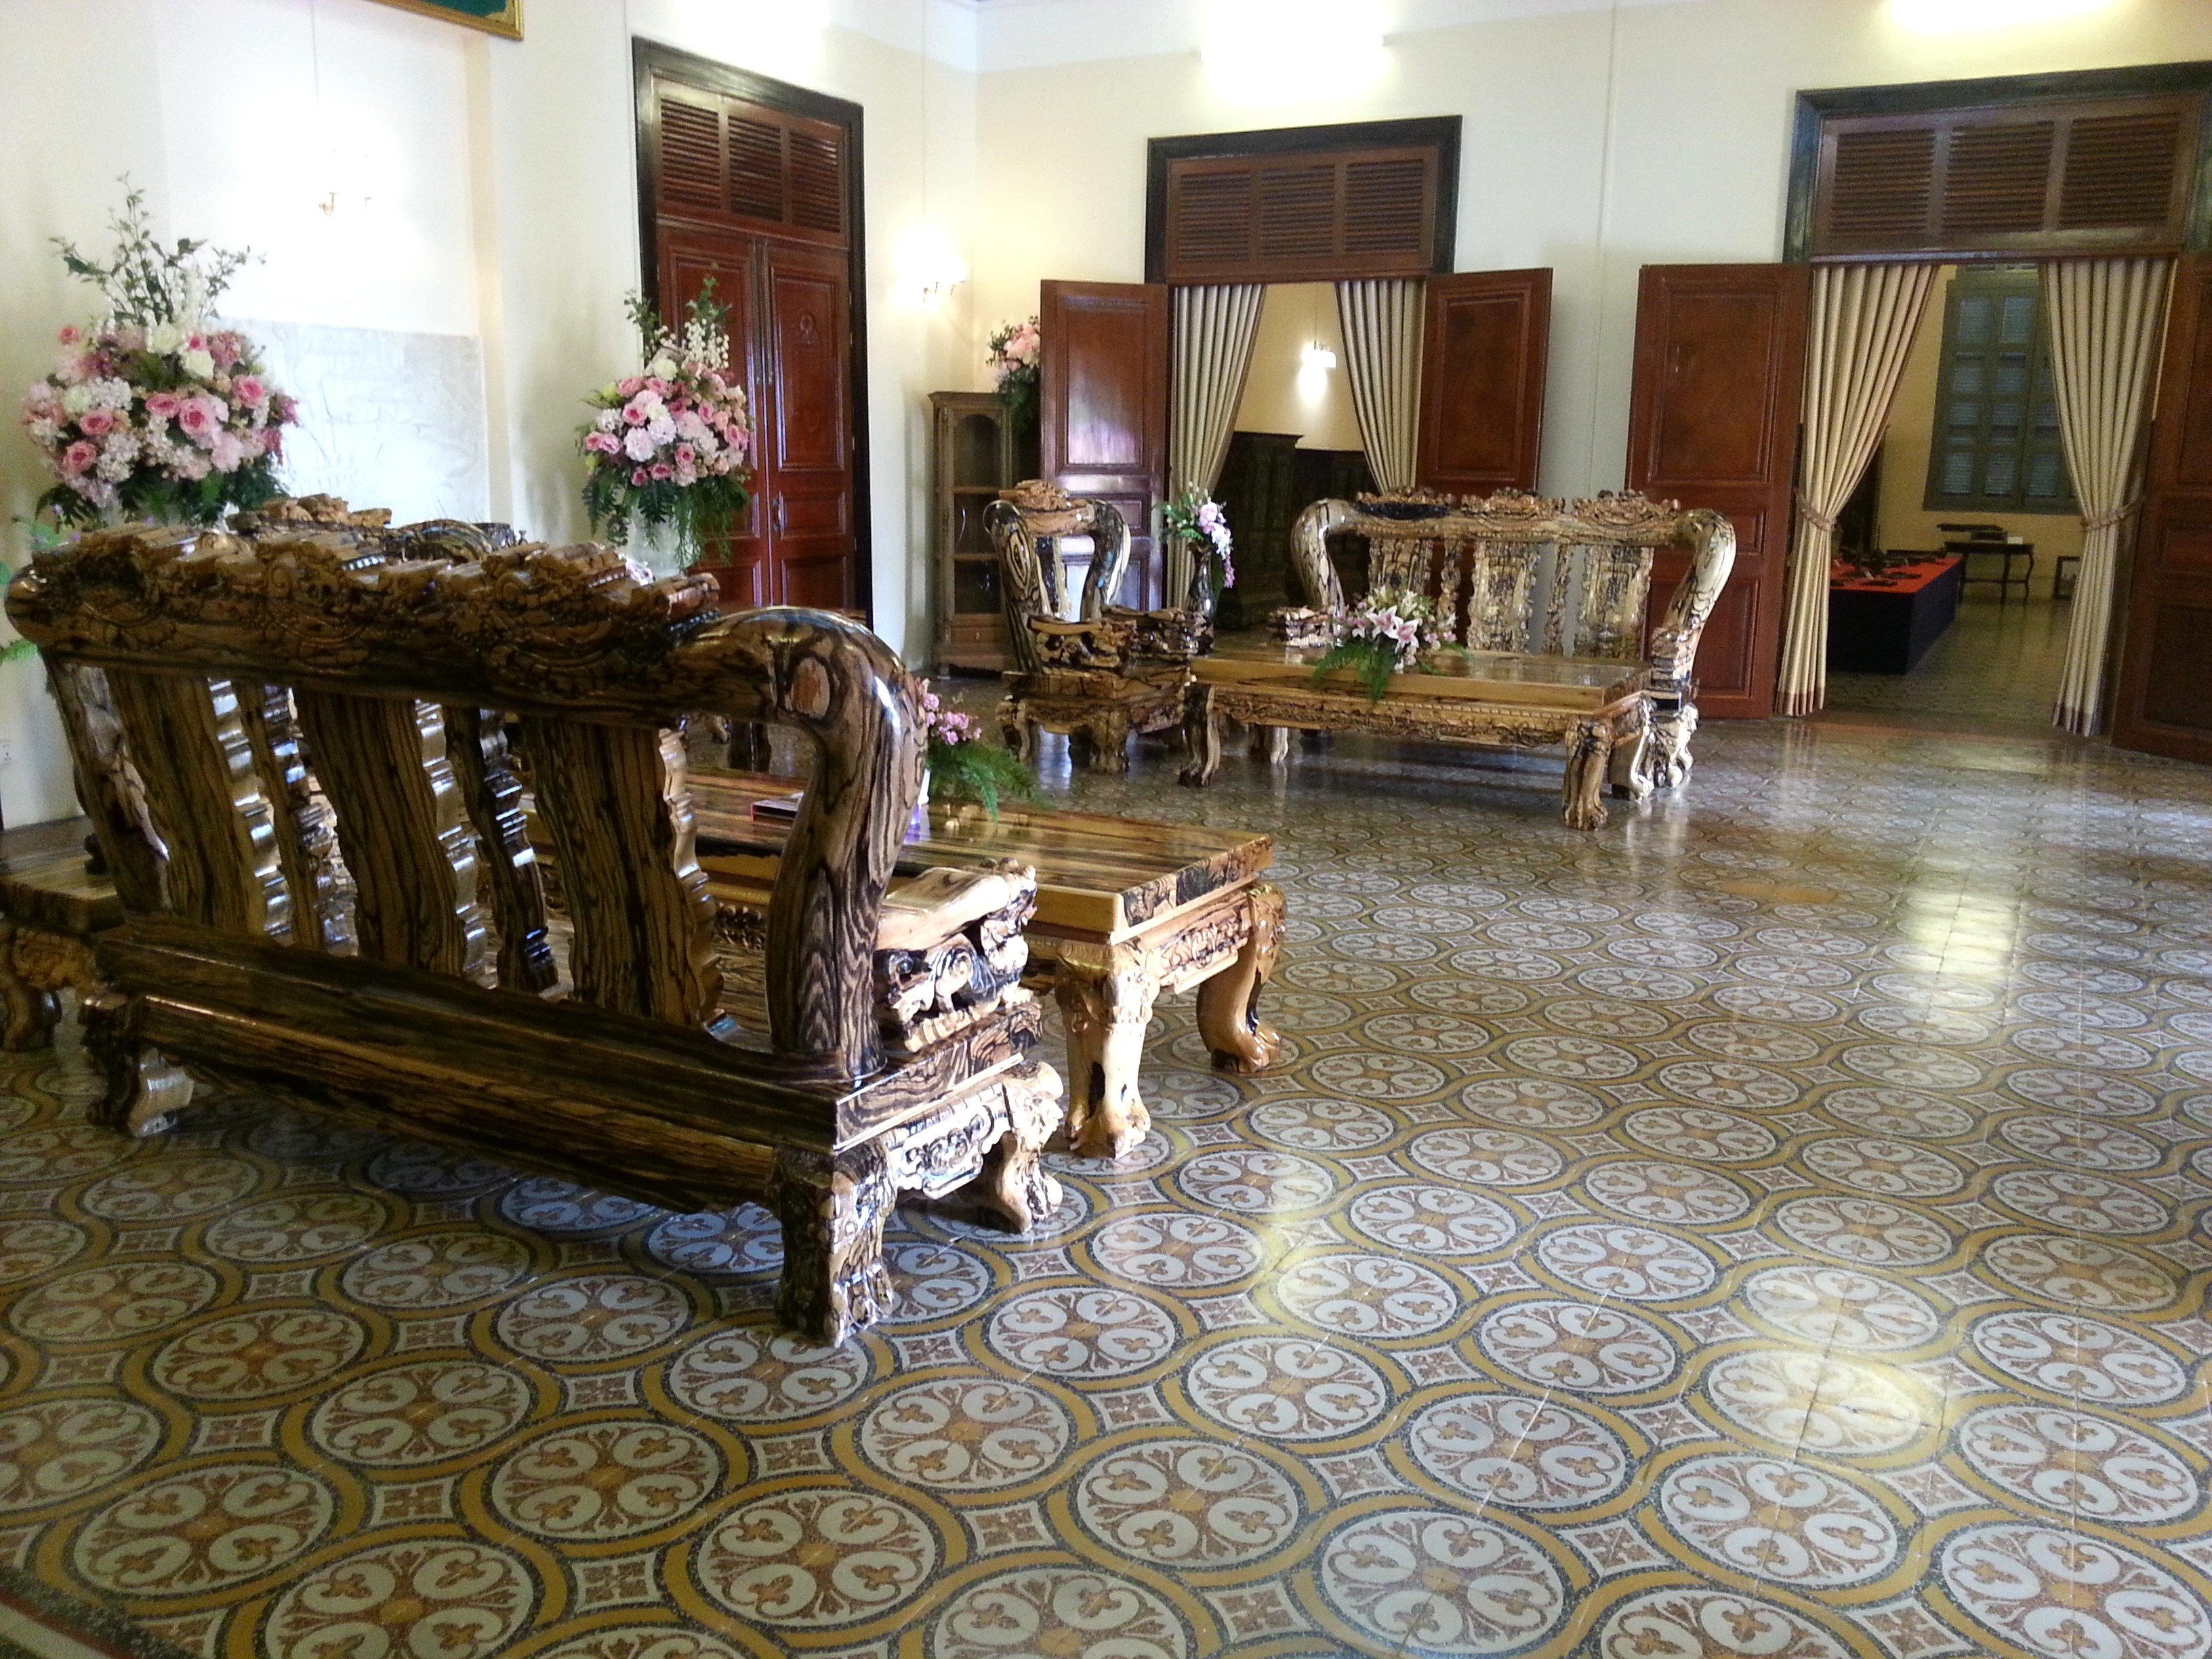 Entrance hall at the Governor's Residence